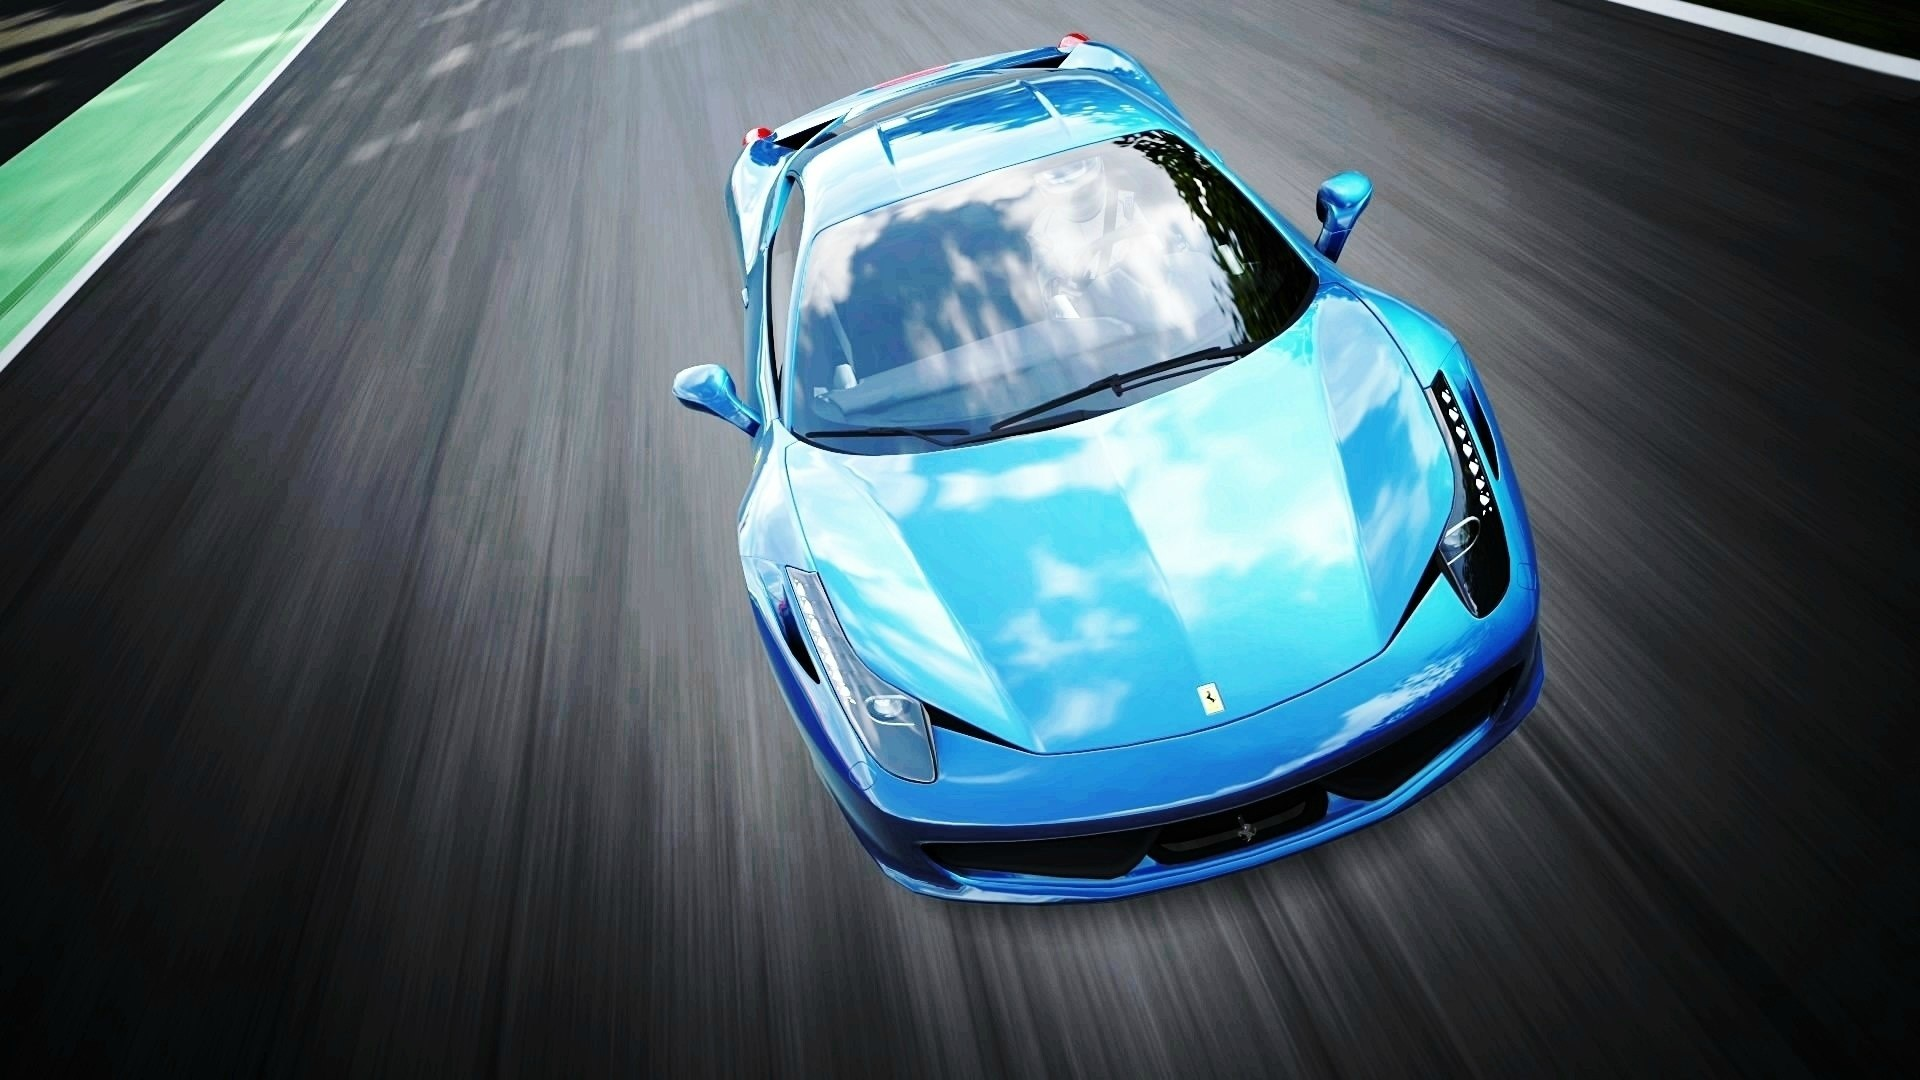 Ferrari 458 Italia Spider Wallpaper Hd Ferrari 458 Wallpapers Pictures Images